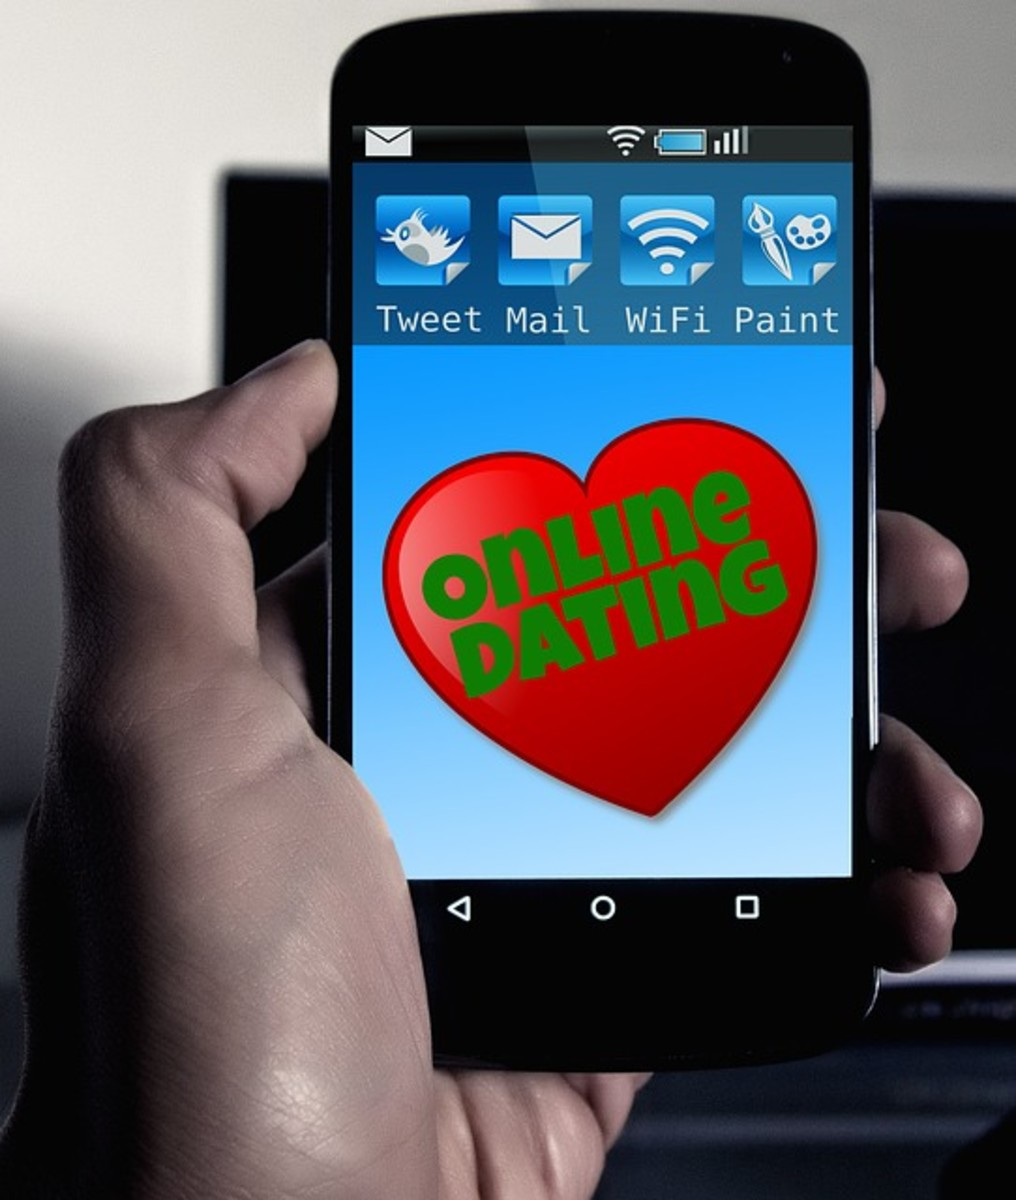 Dating Online: Who Are You?